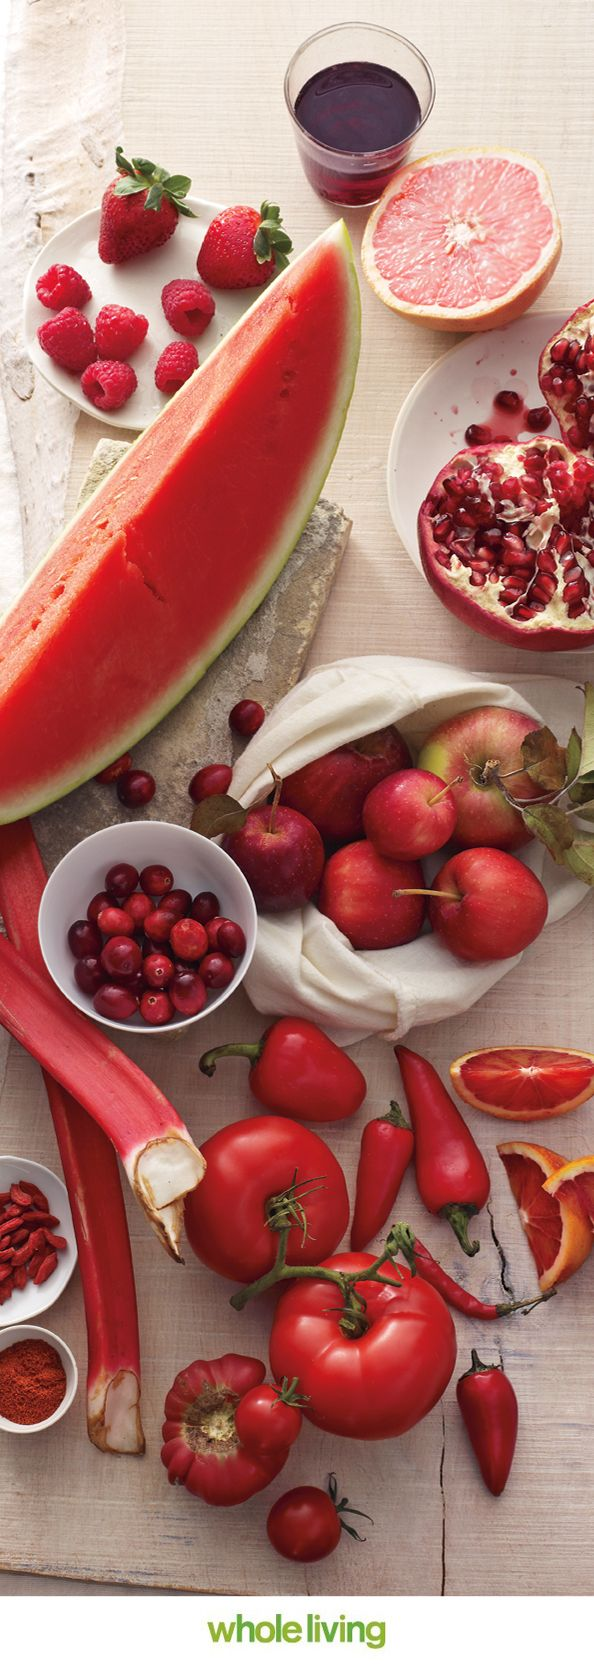 Eat your colors! Red foods are rich in resveratrol, capsaicin, & lycopene.